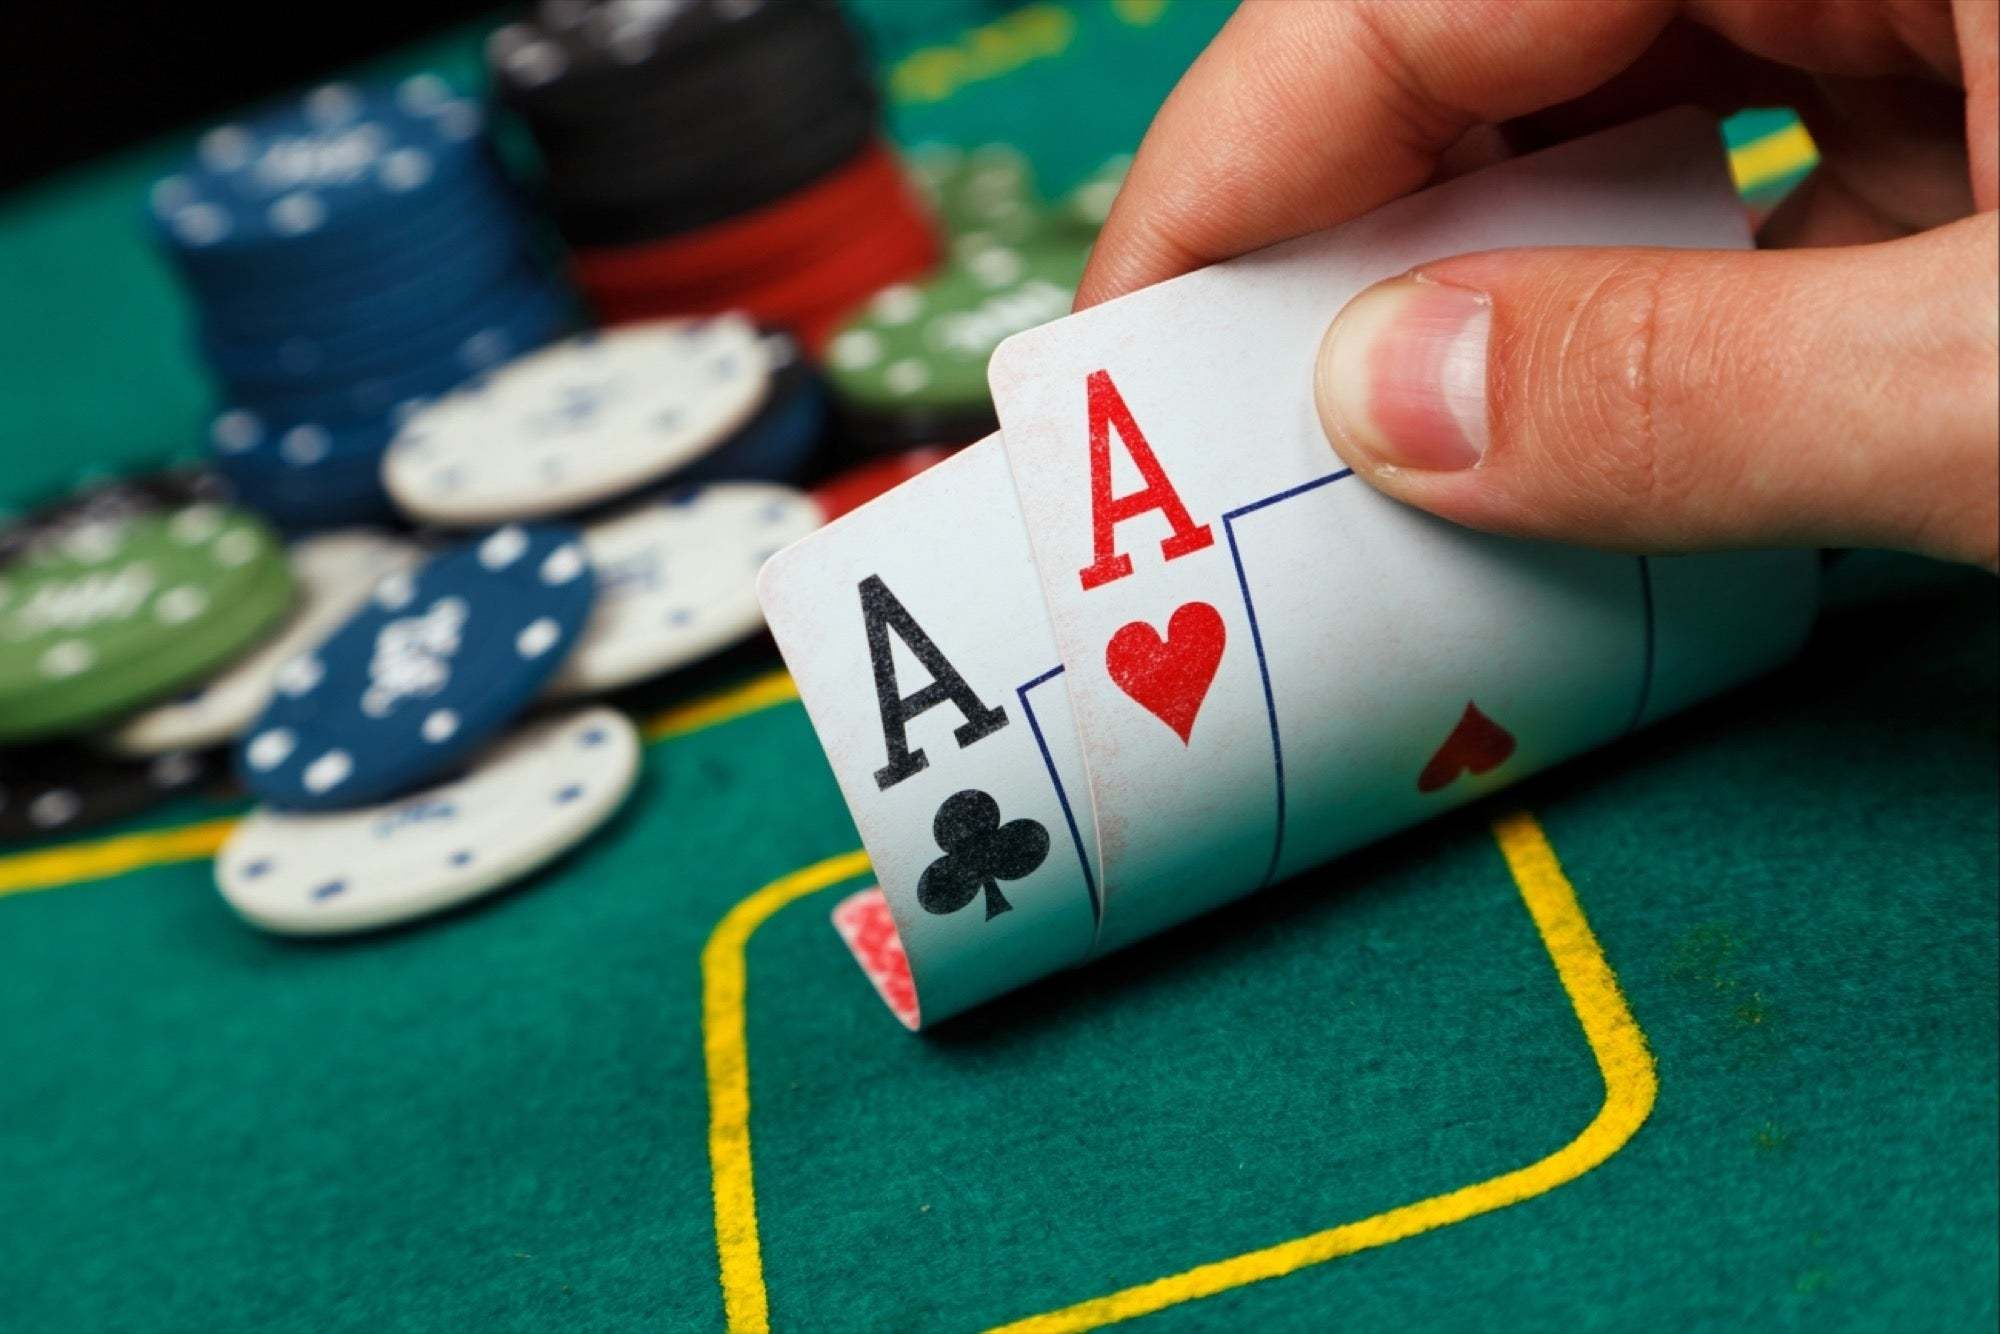 EASY TIPS TO PLAY POKER ONLINE FOR BEGINNERS